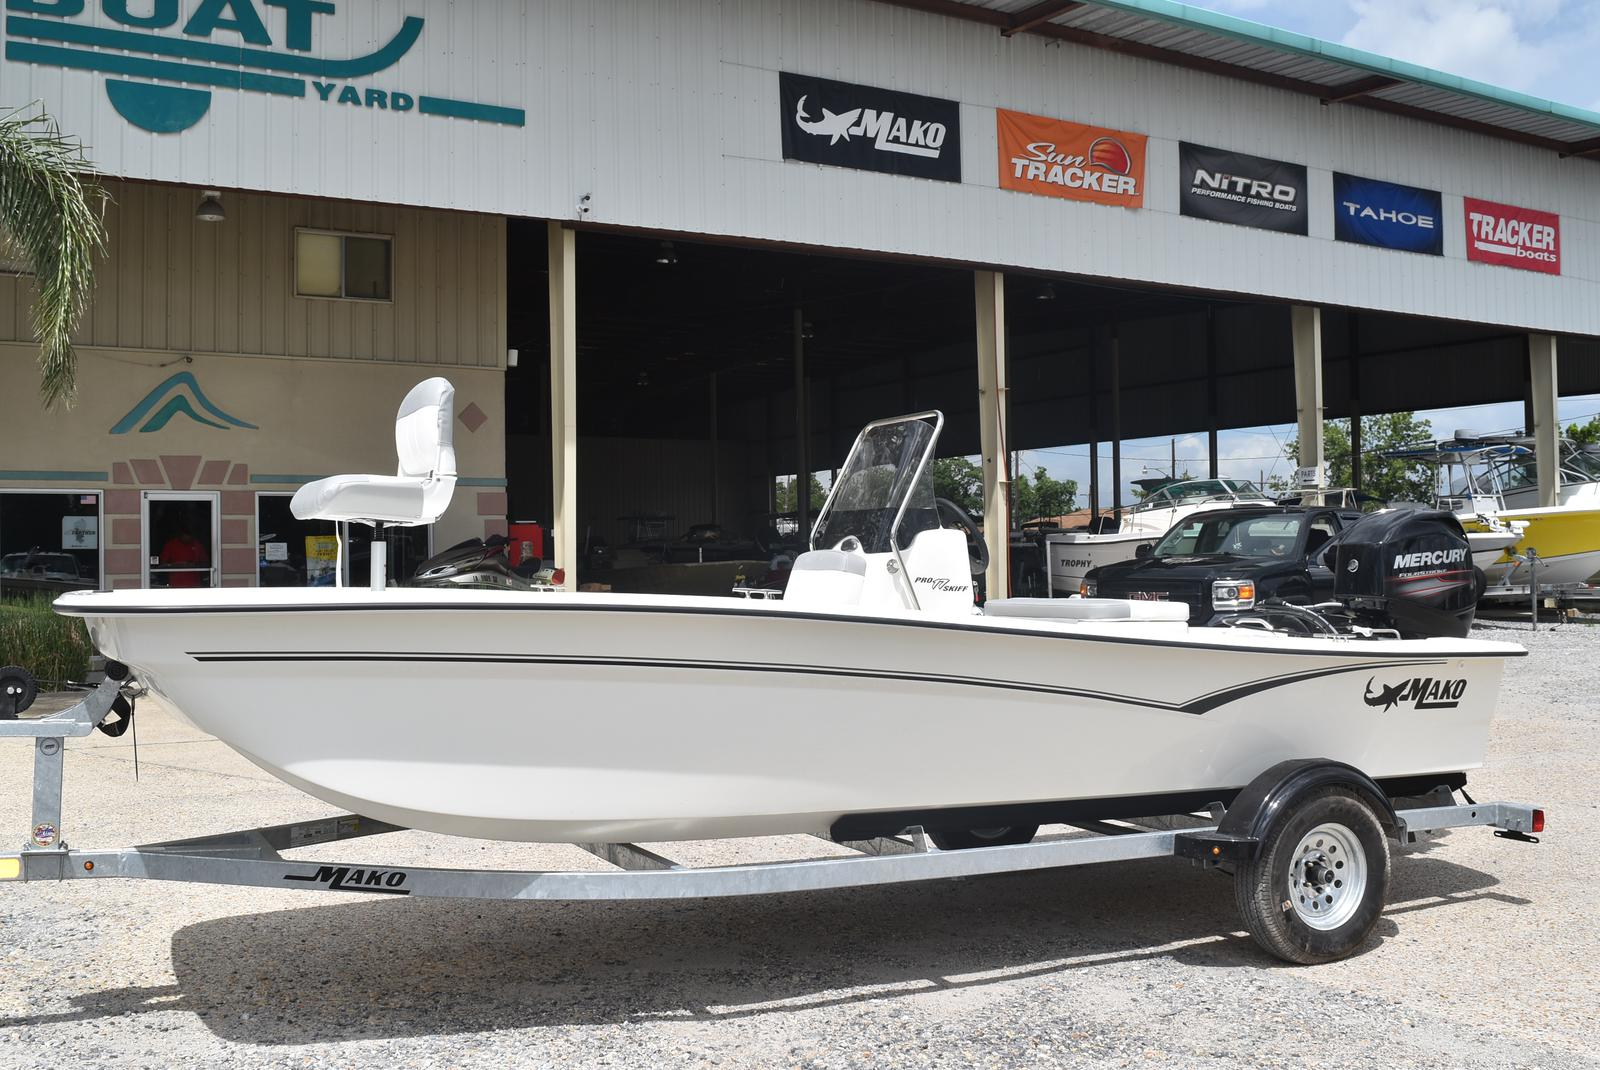 2020 Mako boat for sale, model of the boat is Pro Skiff 17, 75 ELPT & Image # 102 of 702